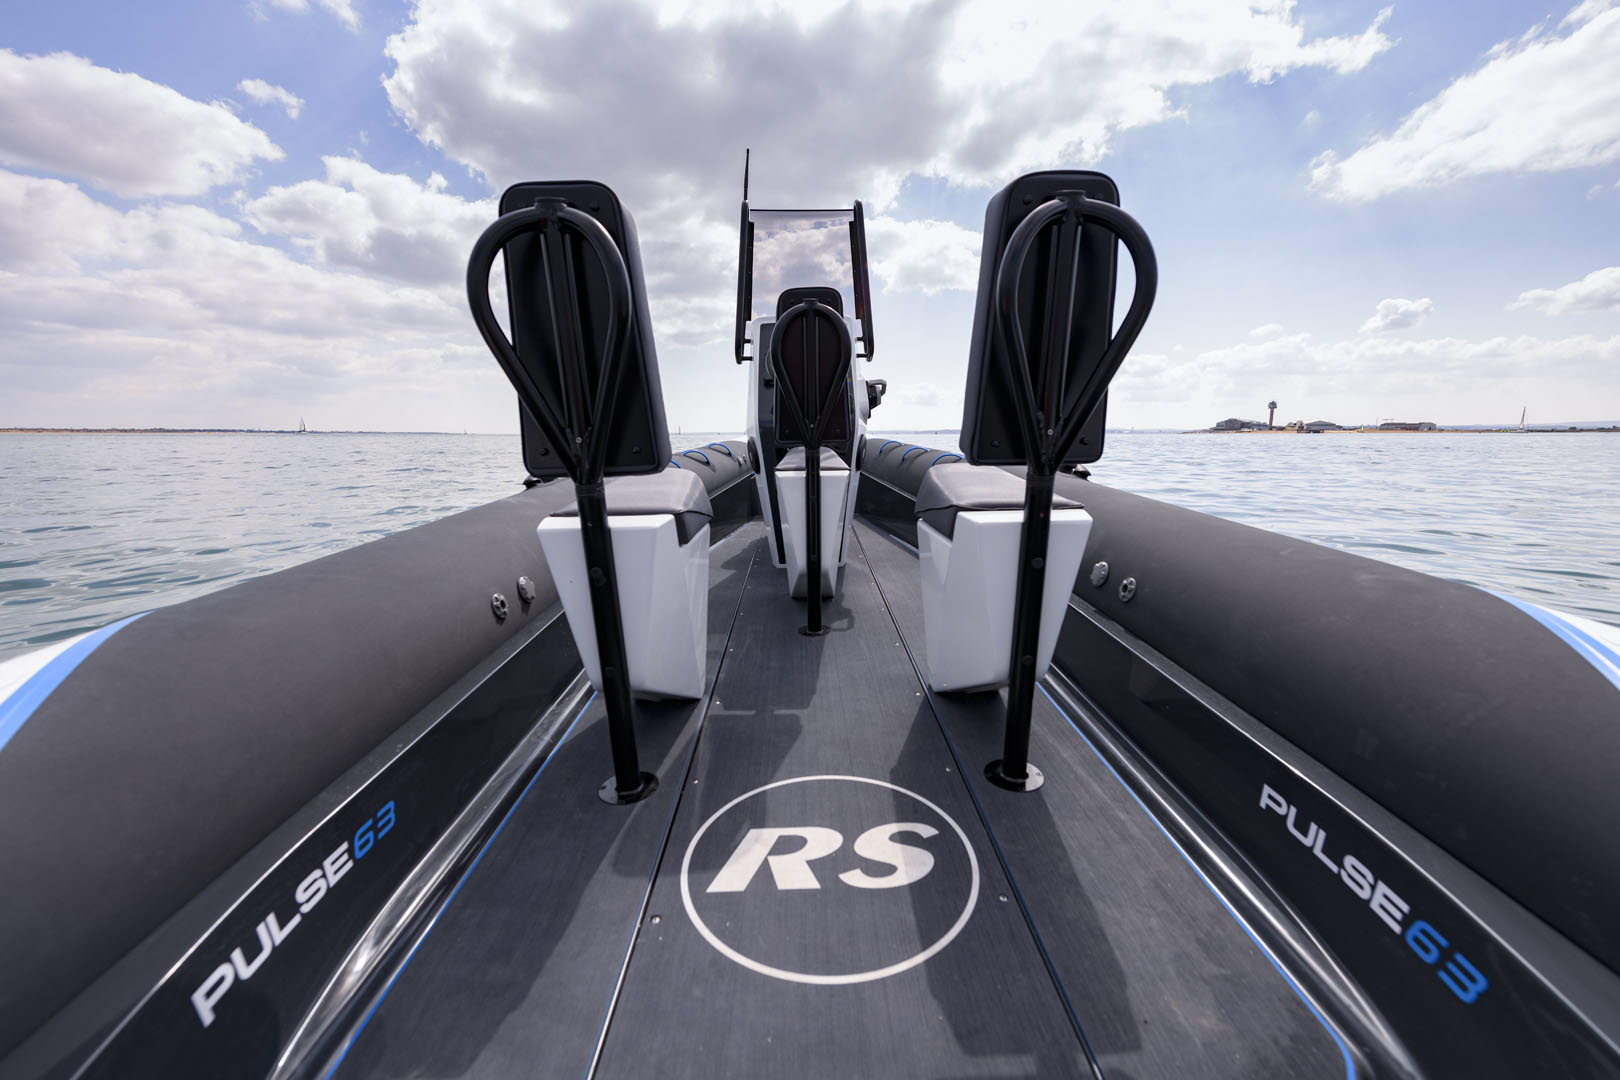 ECO Electric Boat - Pulse 63 RIB - RS Electric Boats - Seating